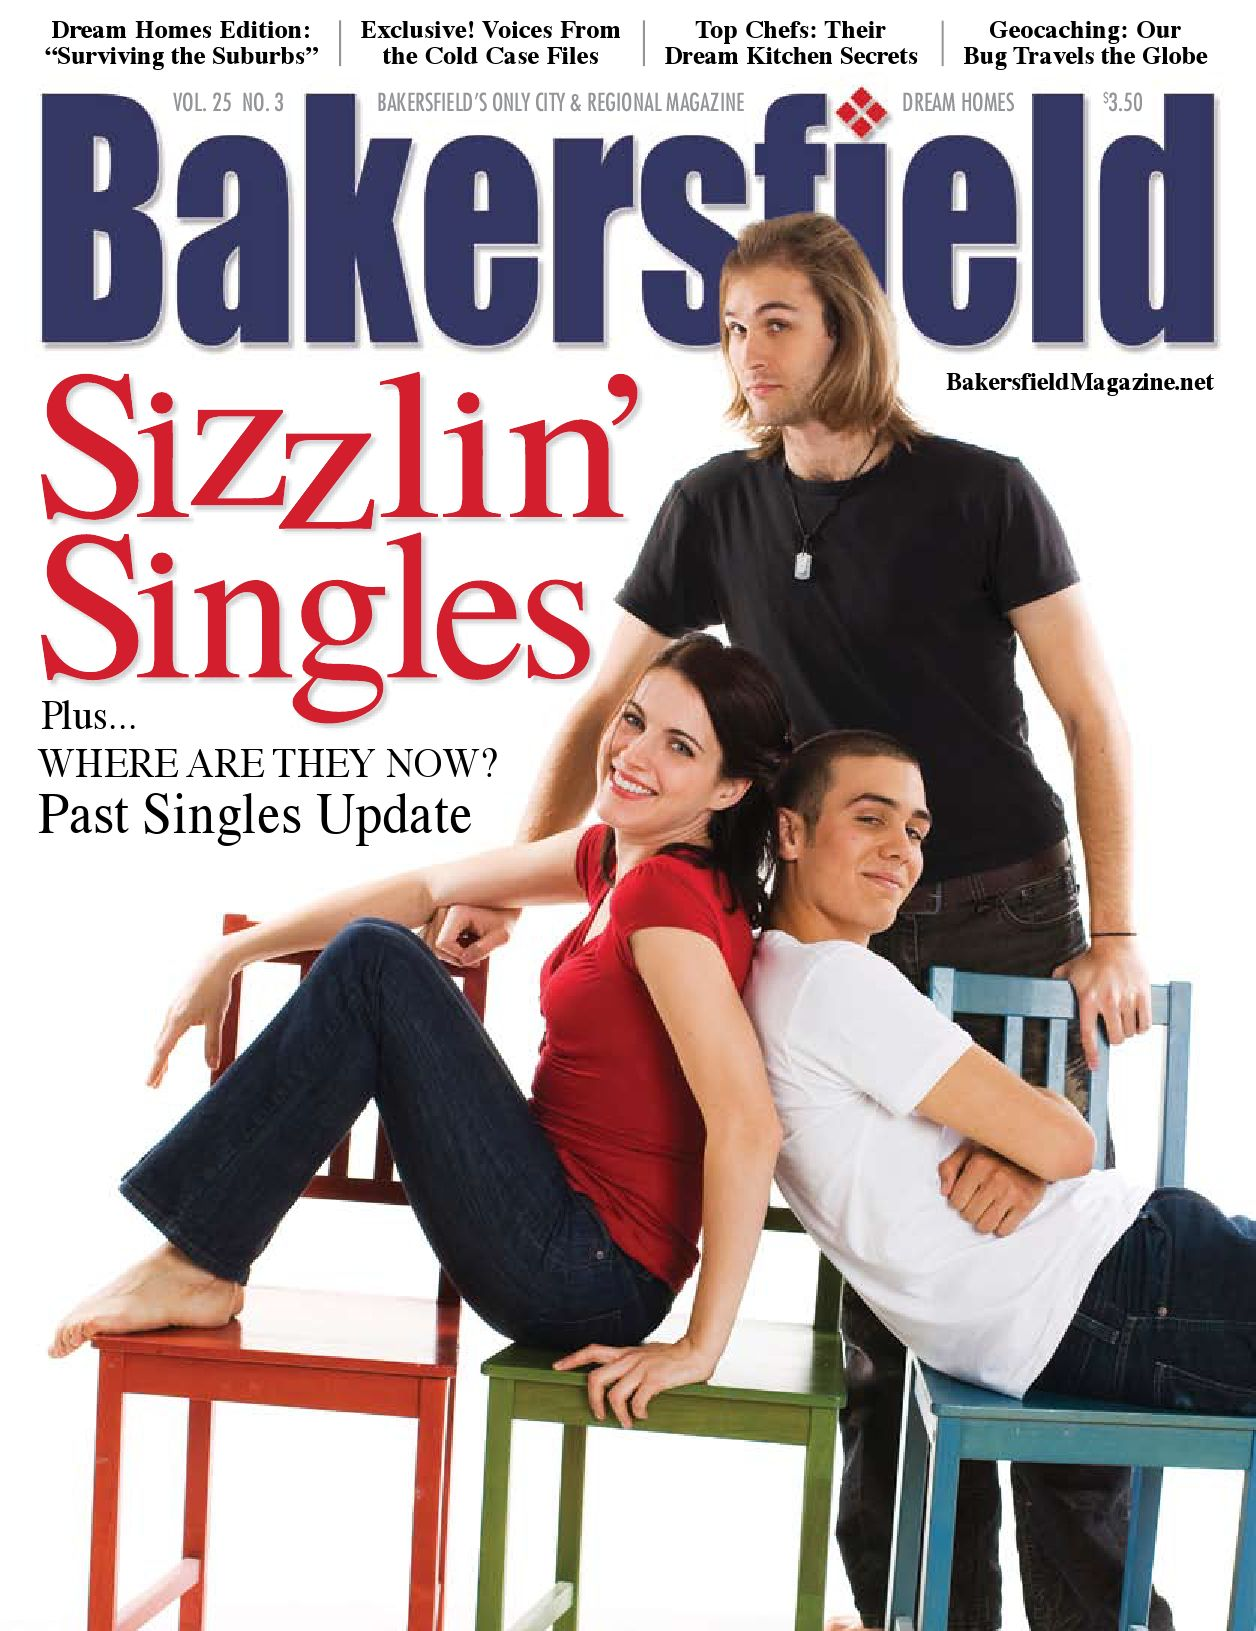 Bakersfield Magazine 25 3 Issue Sizzlin Singles By